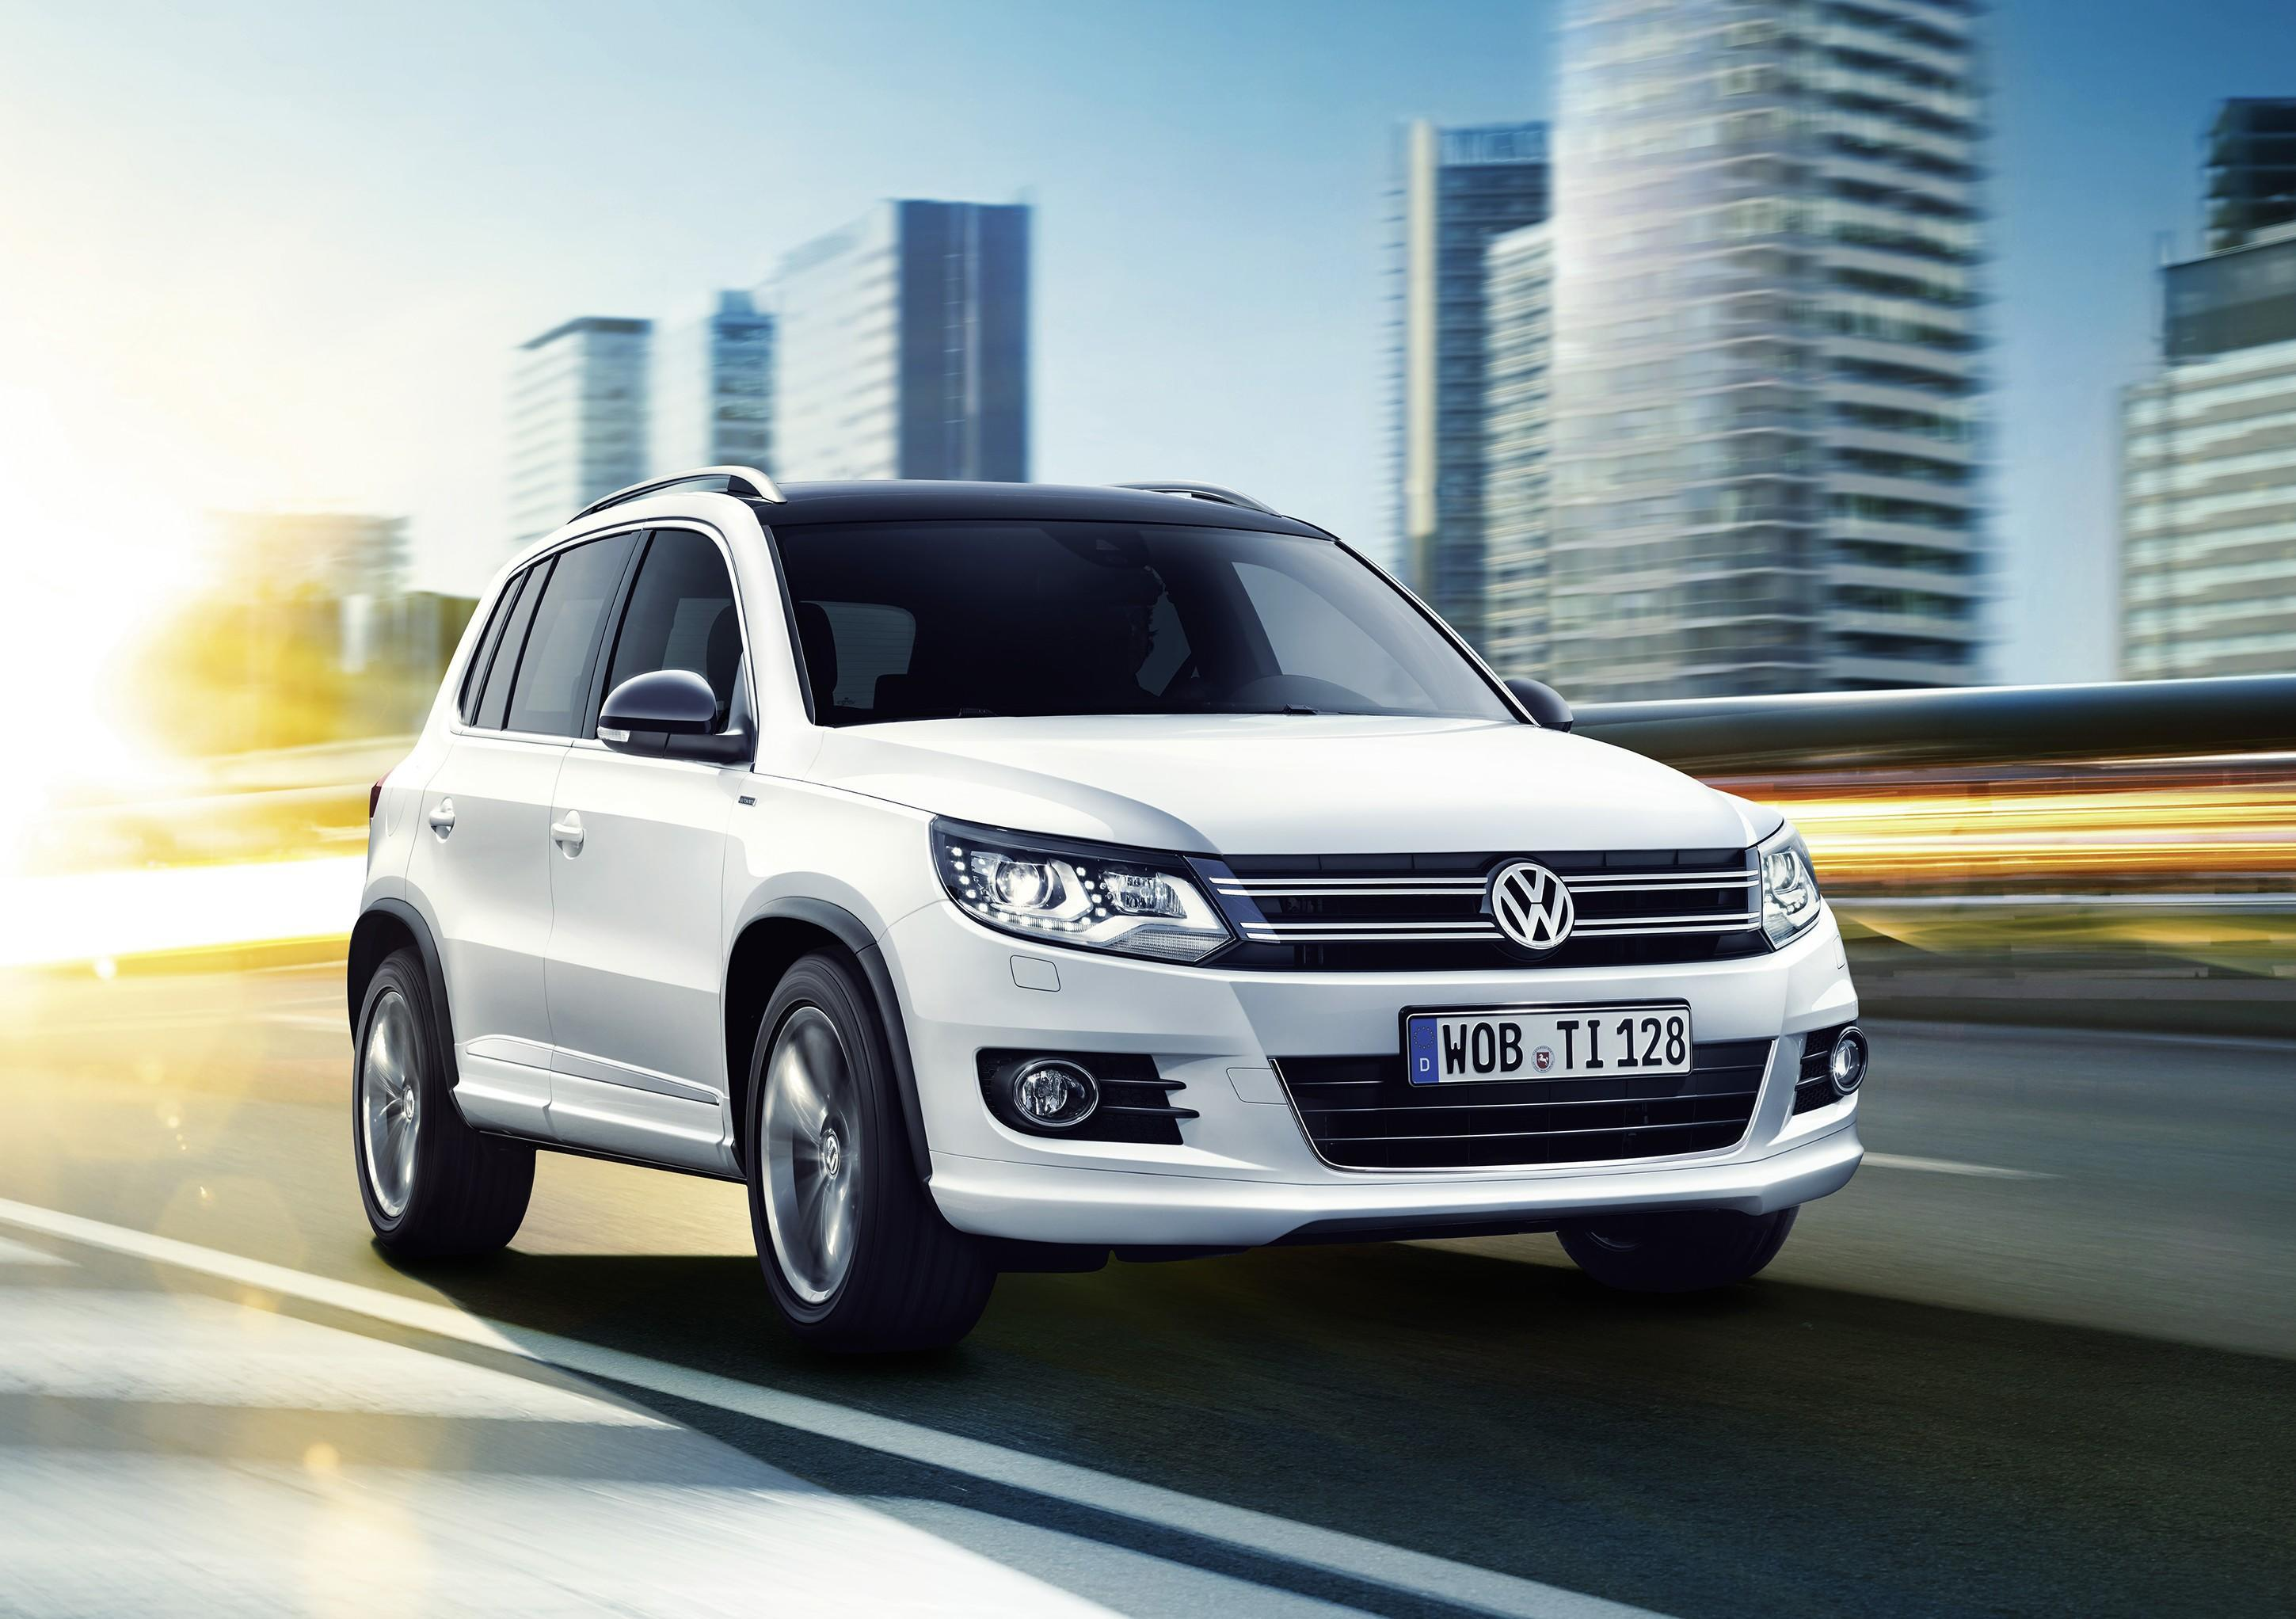 vw tiguan cityscape sondermodell f r das suv. Black Bedroom Furniture Sets. Home Design Ideas